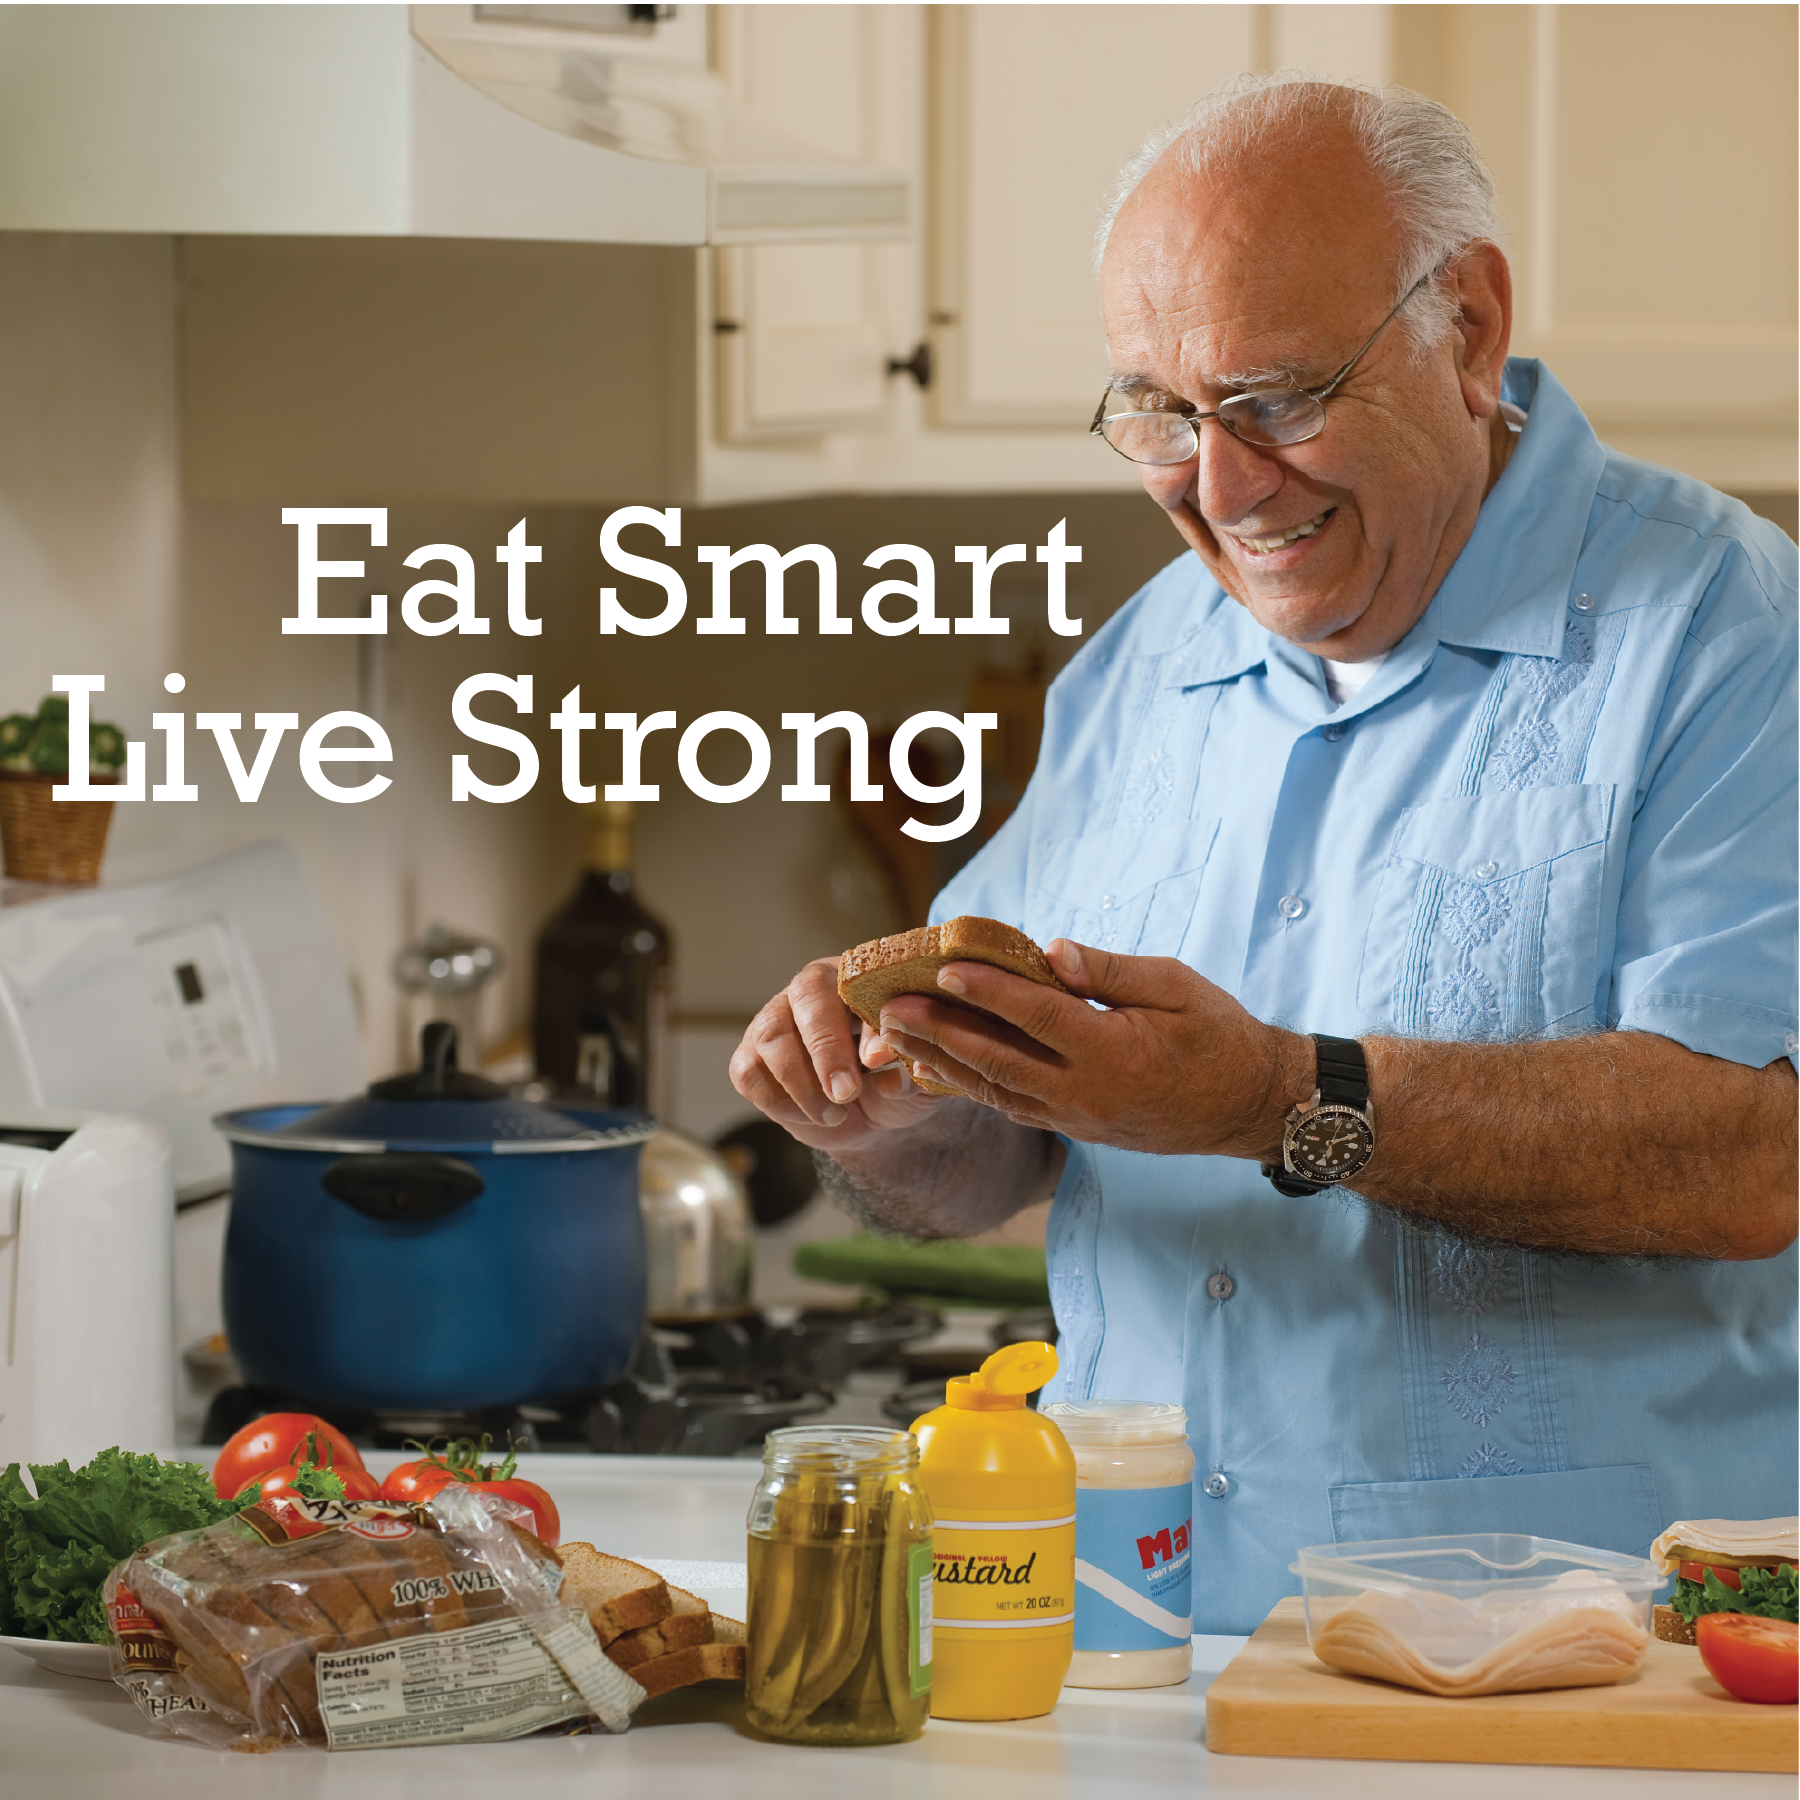 Eat Smart, Live Strong - Kickoff Cooking Demo